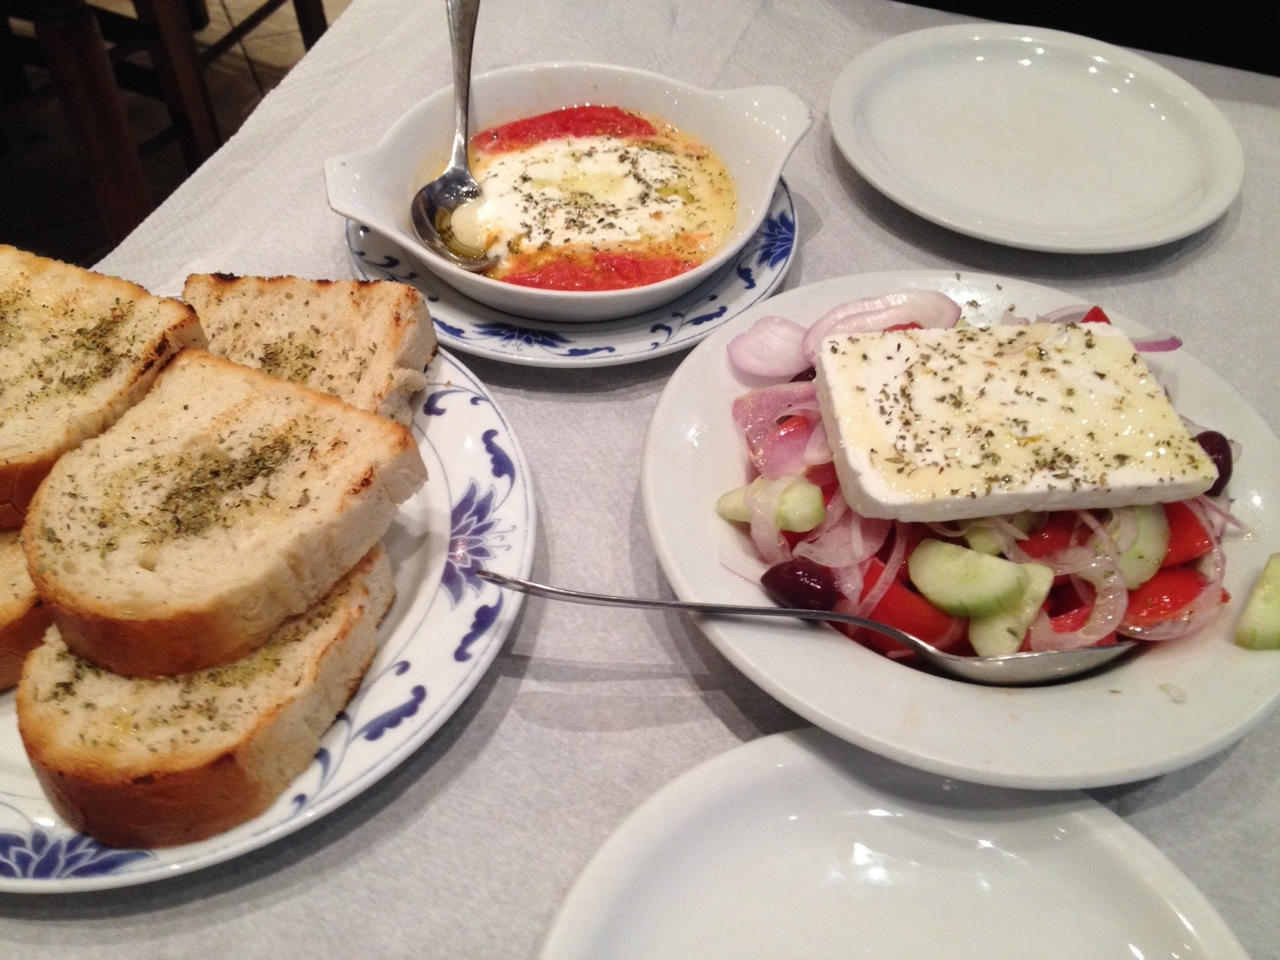 We started with Greek salad and baked cheese